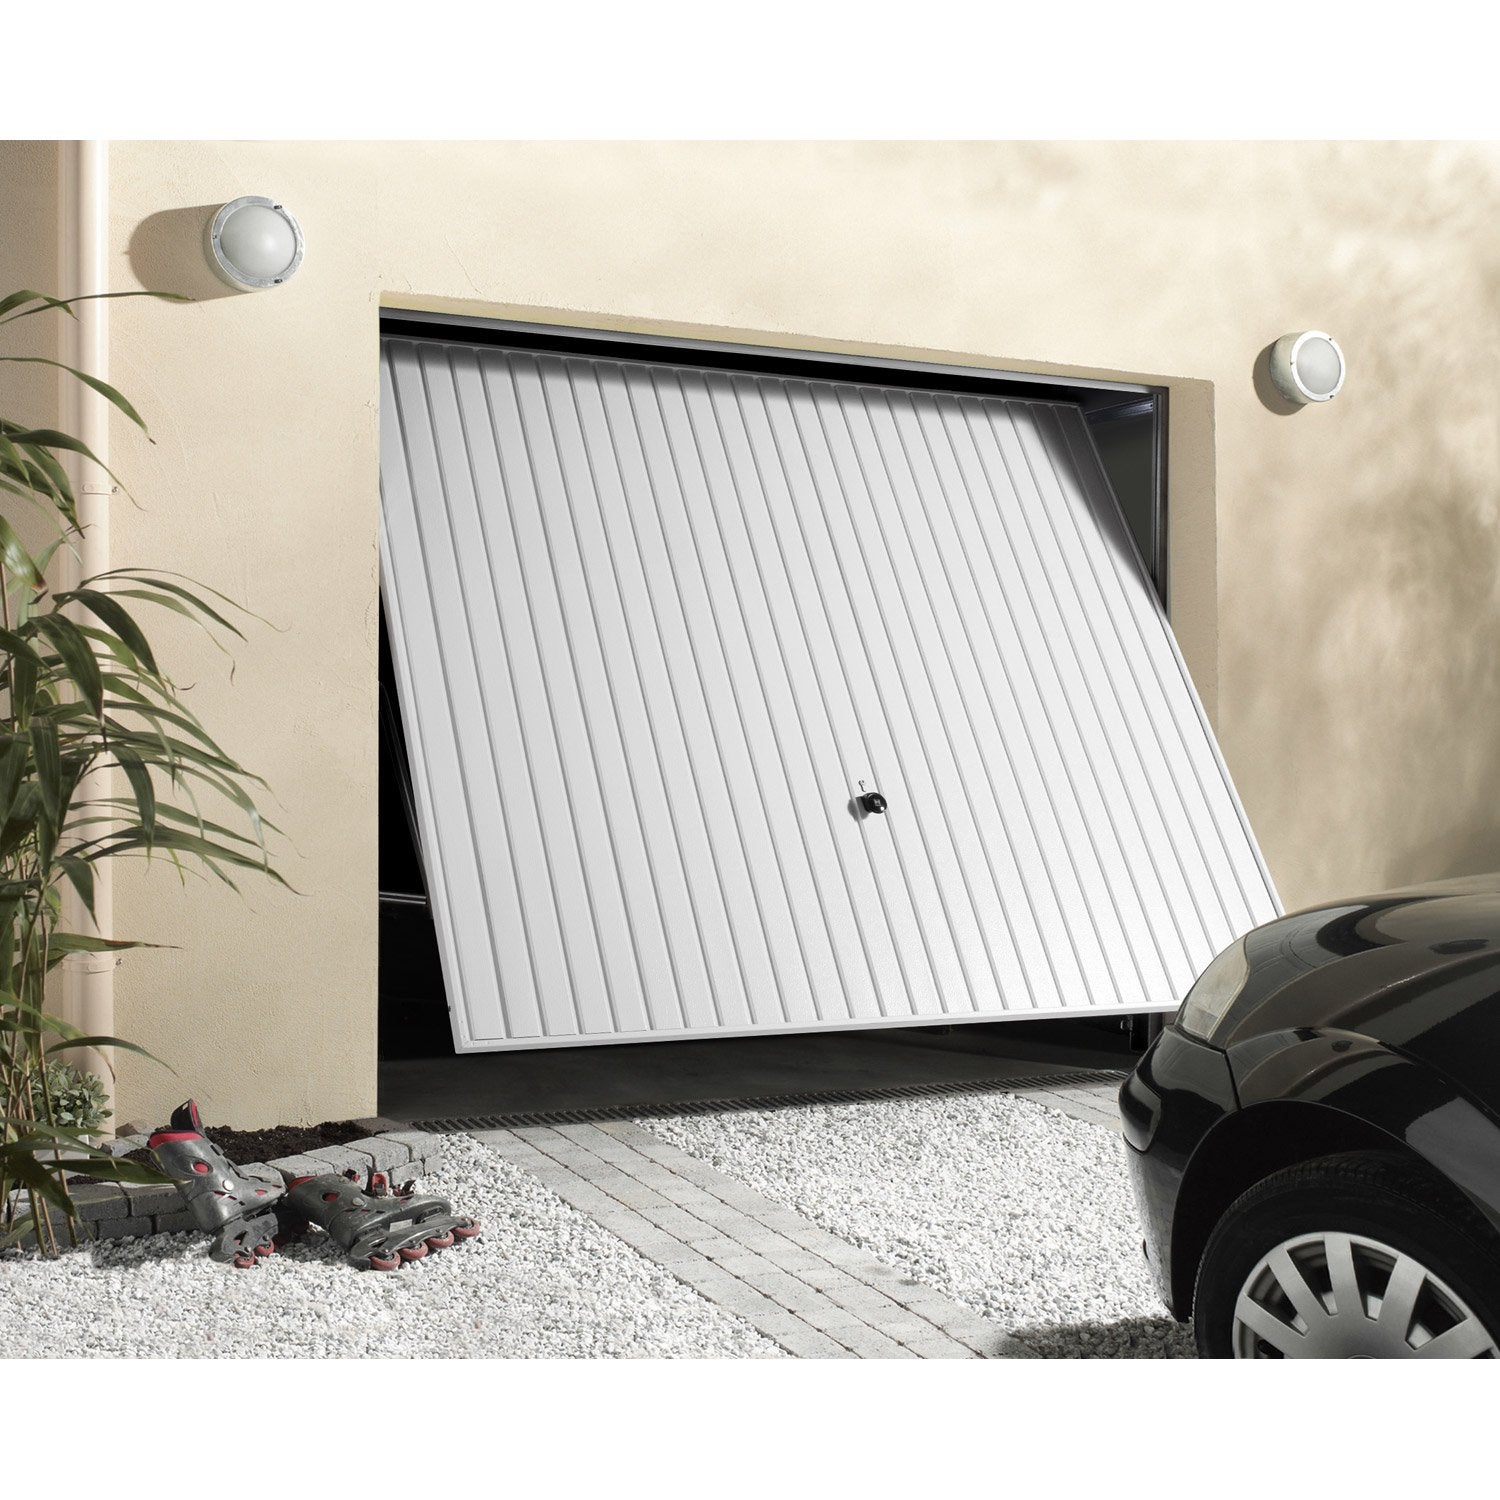 Porte de garage basculante manuelle d bordante x l for Porte de garage sectionnelle 220 x 200